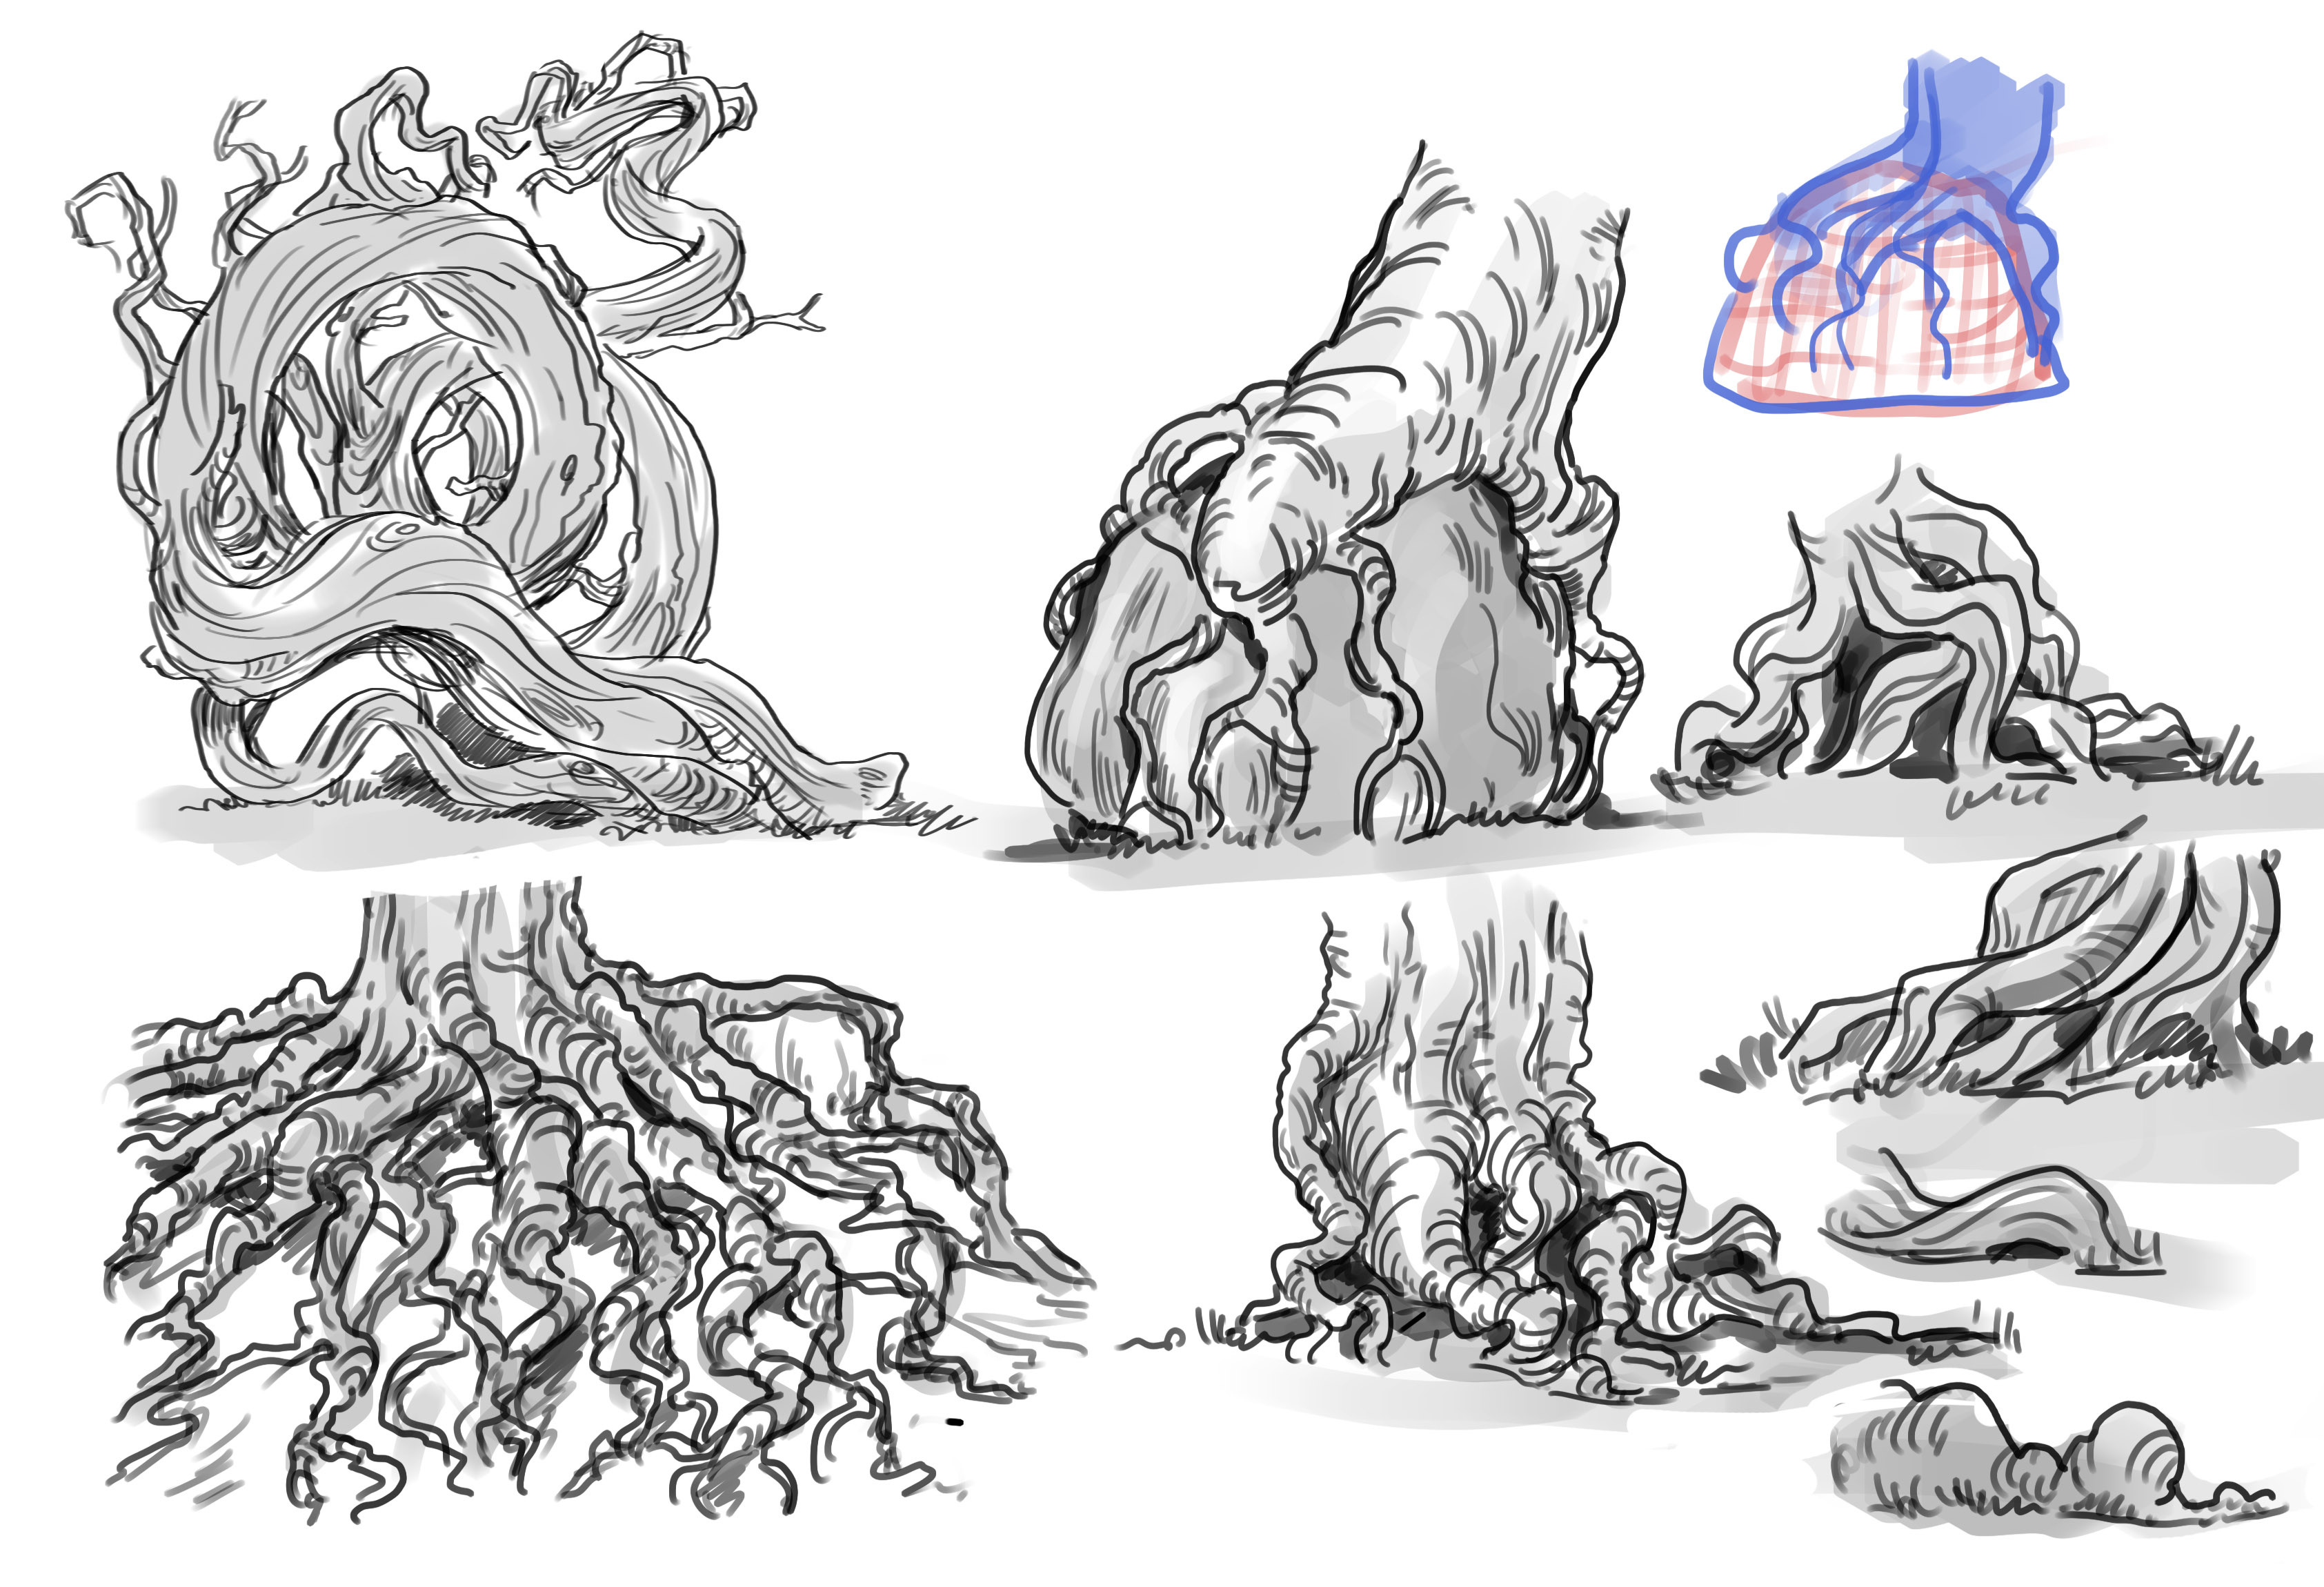 Root studies (with Etherington brothers ref) to get warmed up